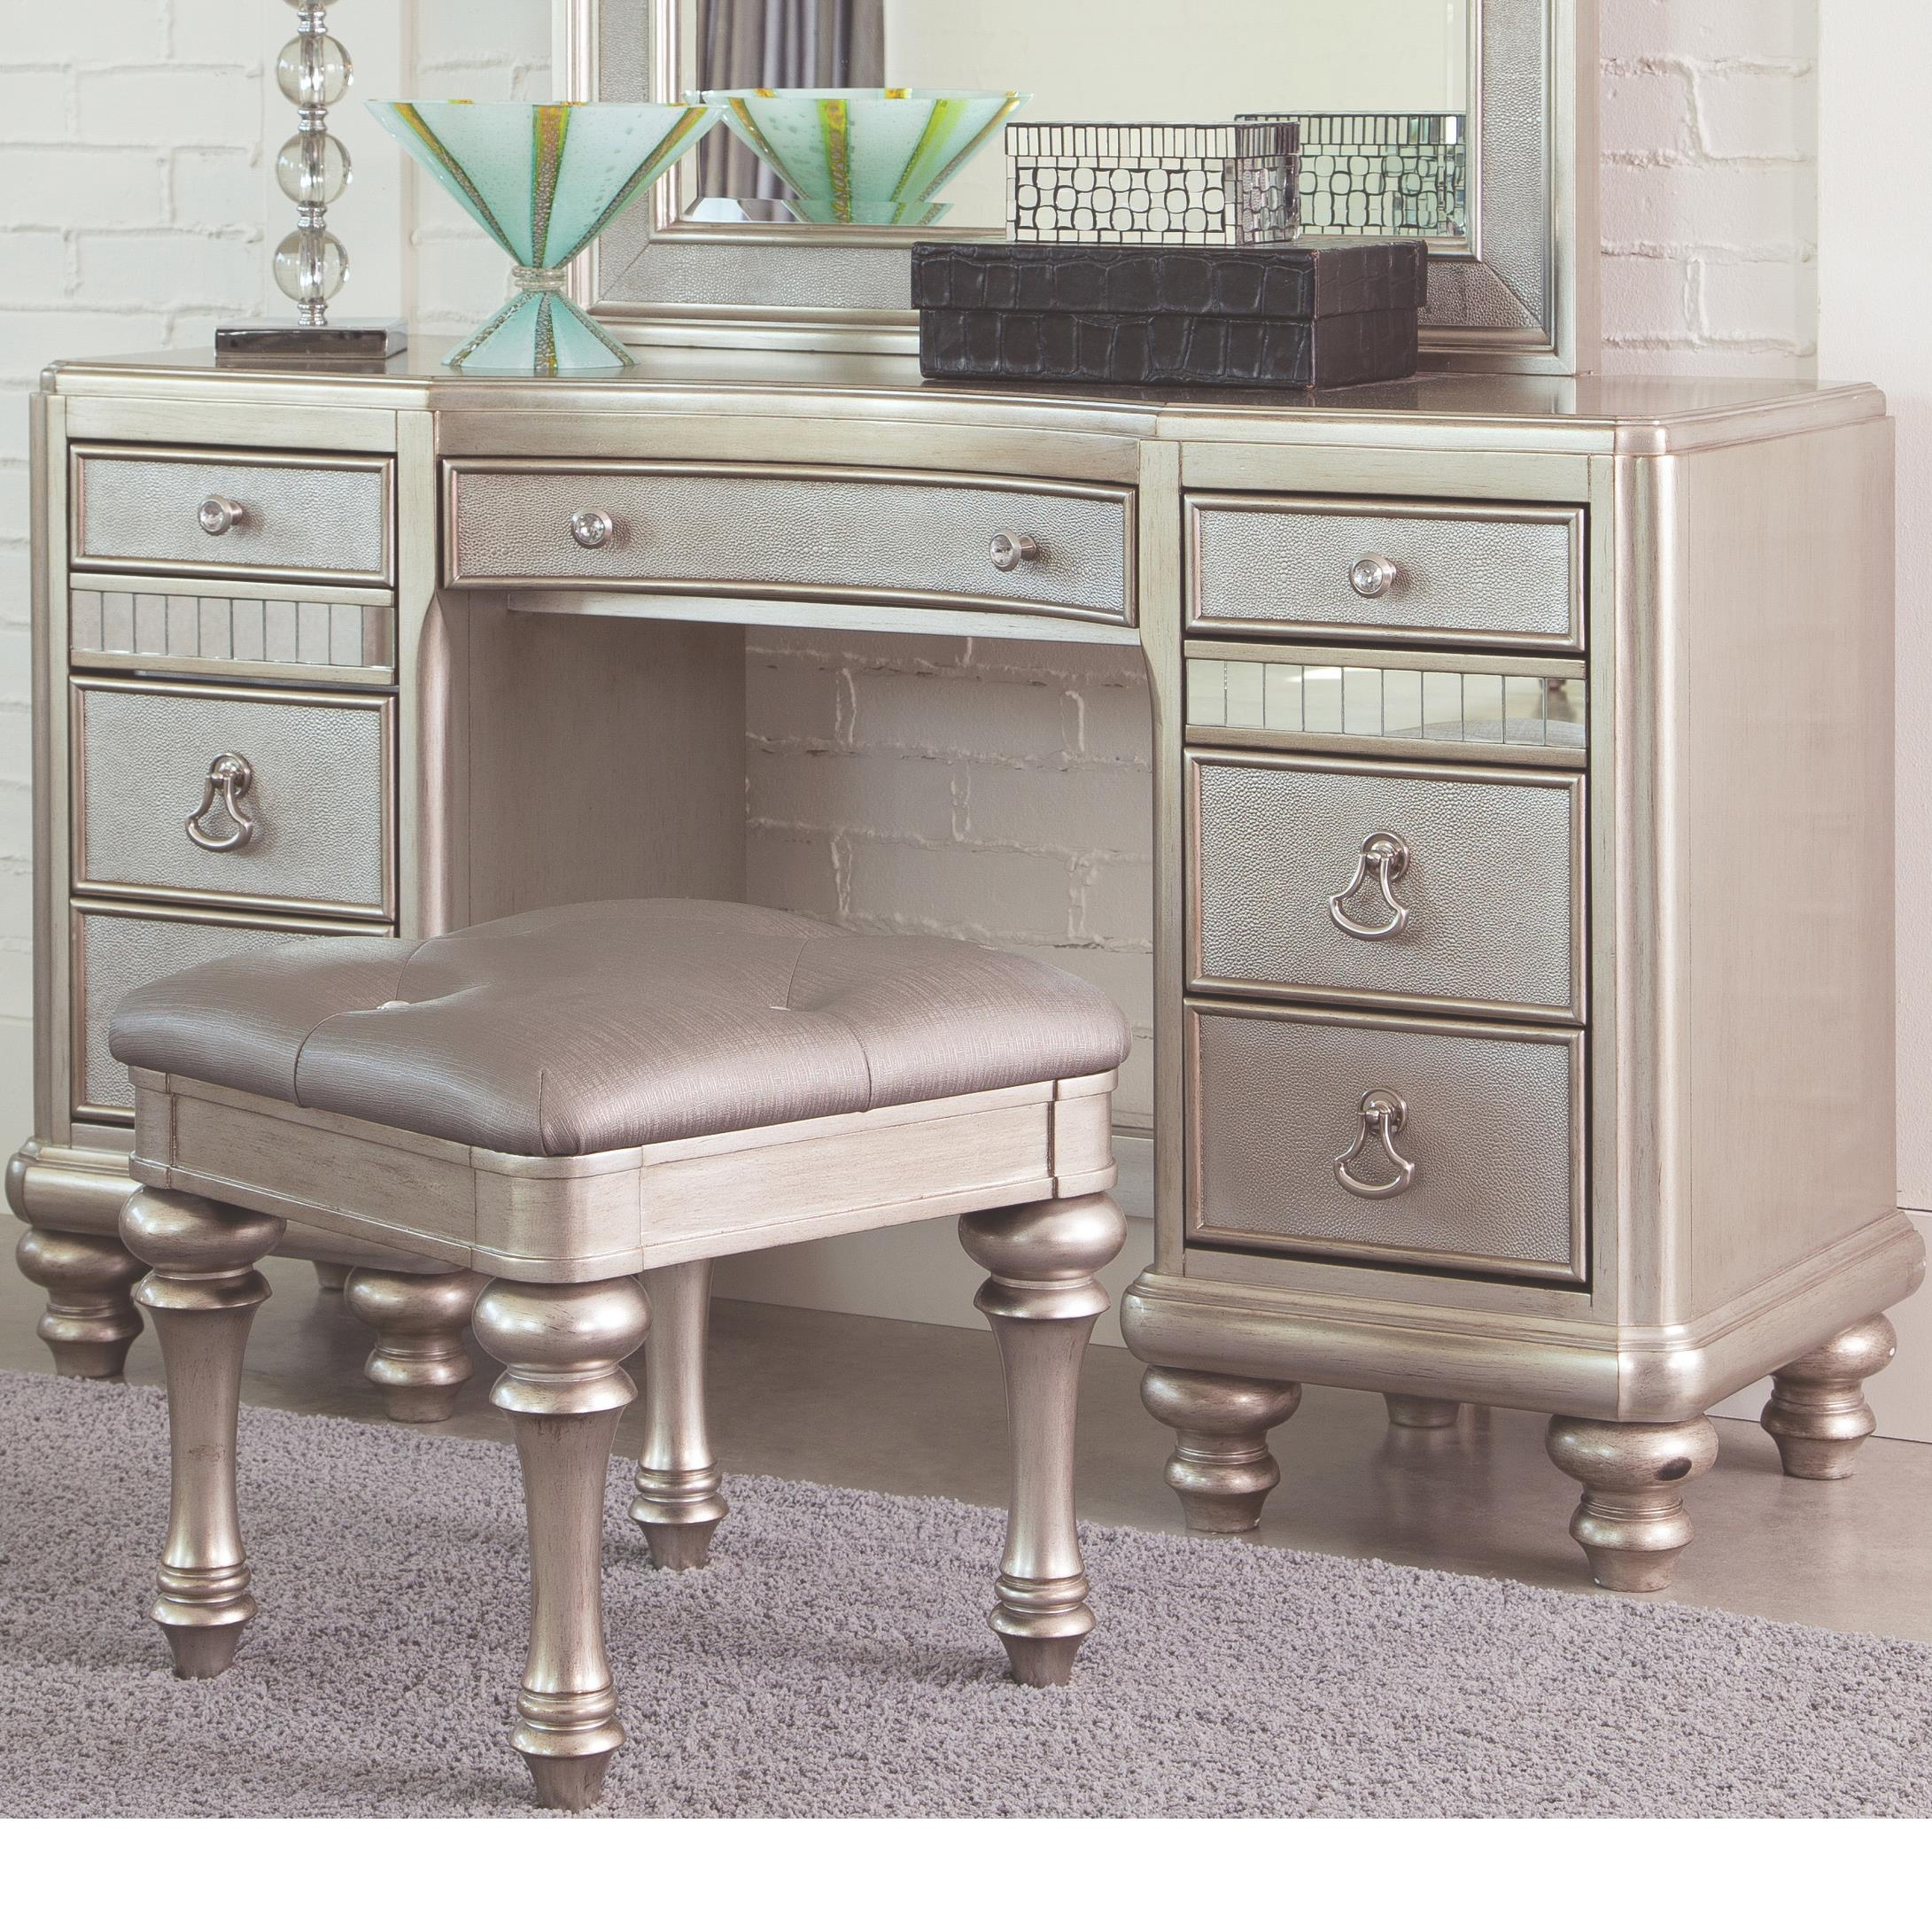 Vanity Desk Chair Bling Game Vanity Desk With 7 Drawers And Stacked Bun Feet